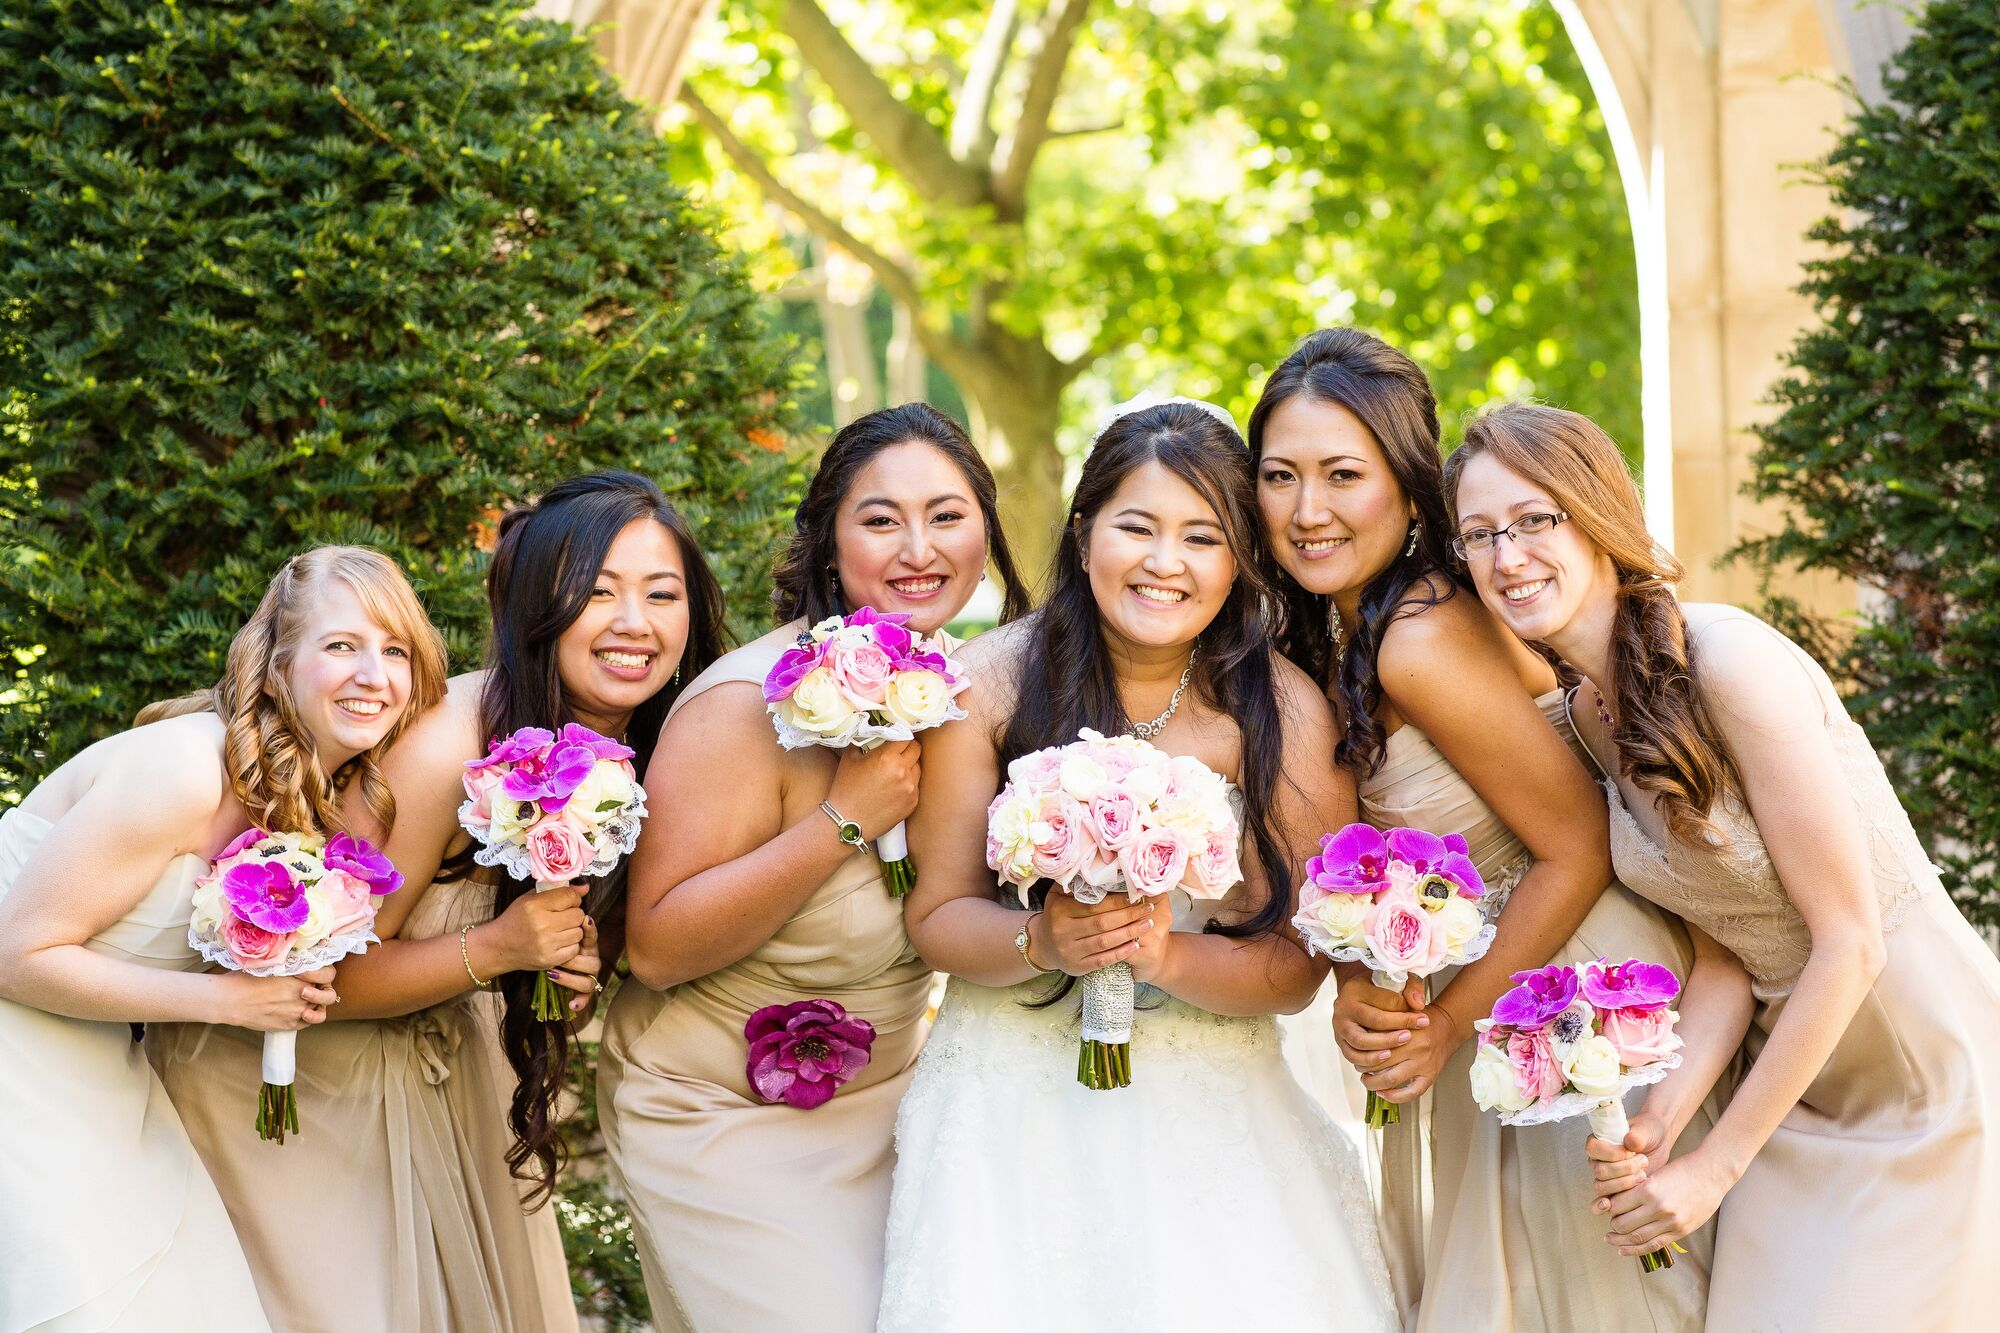 Real Bridesmaids In Beige Bridesmaid Dresses: Short, Mismatched, Beige Bridesmaid Dresses